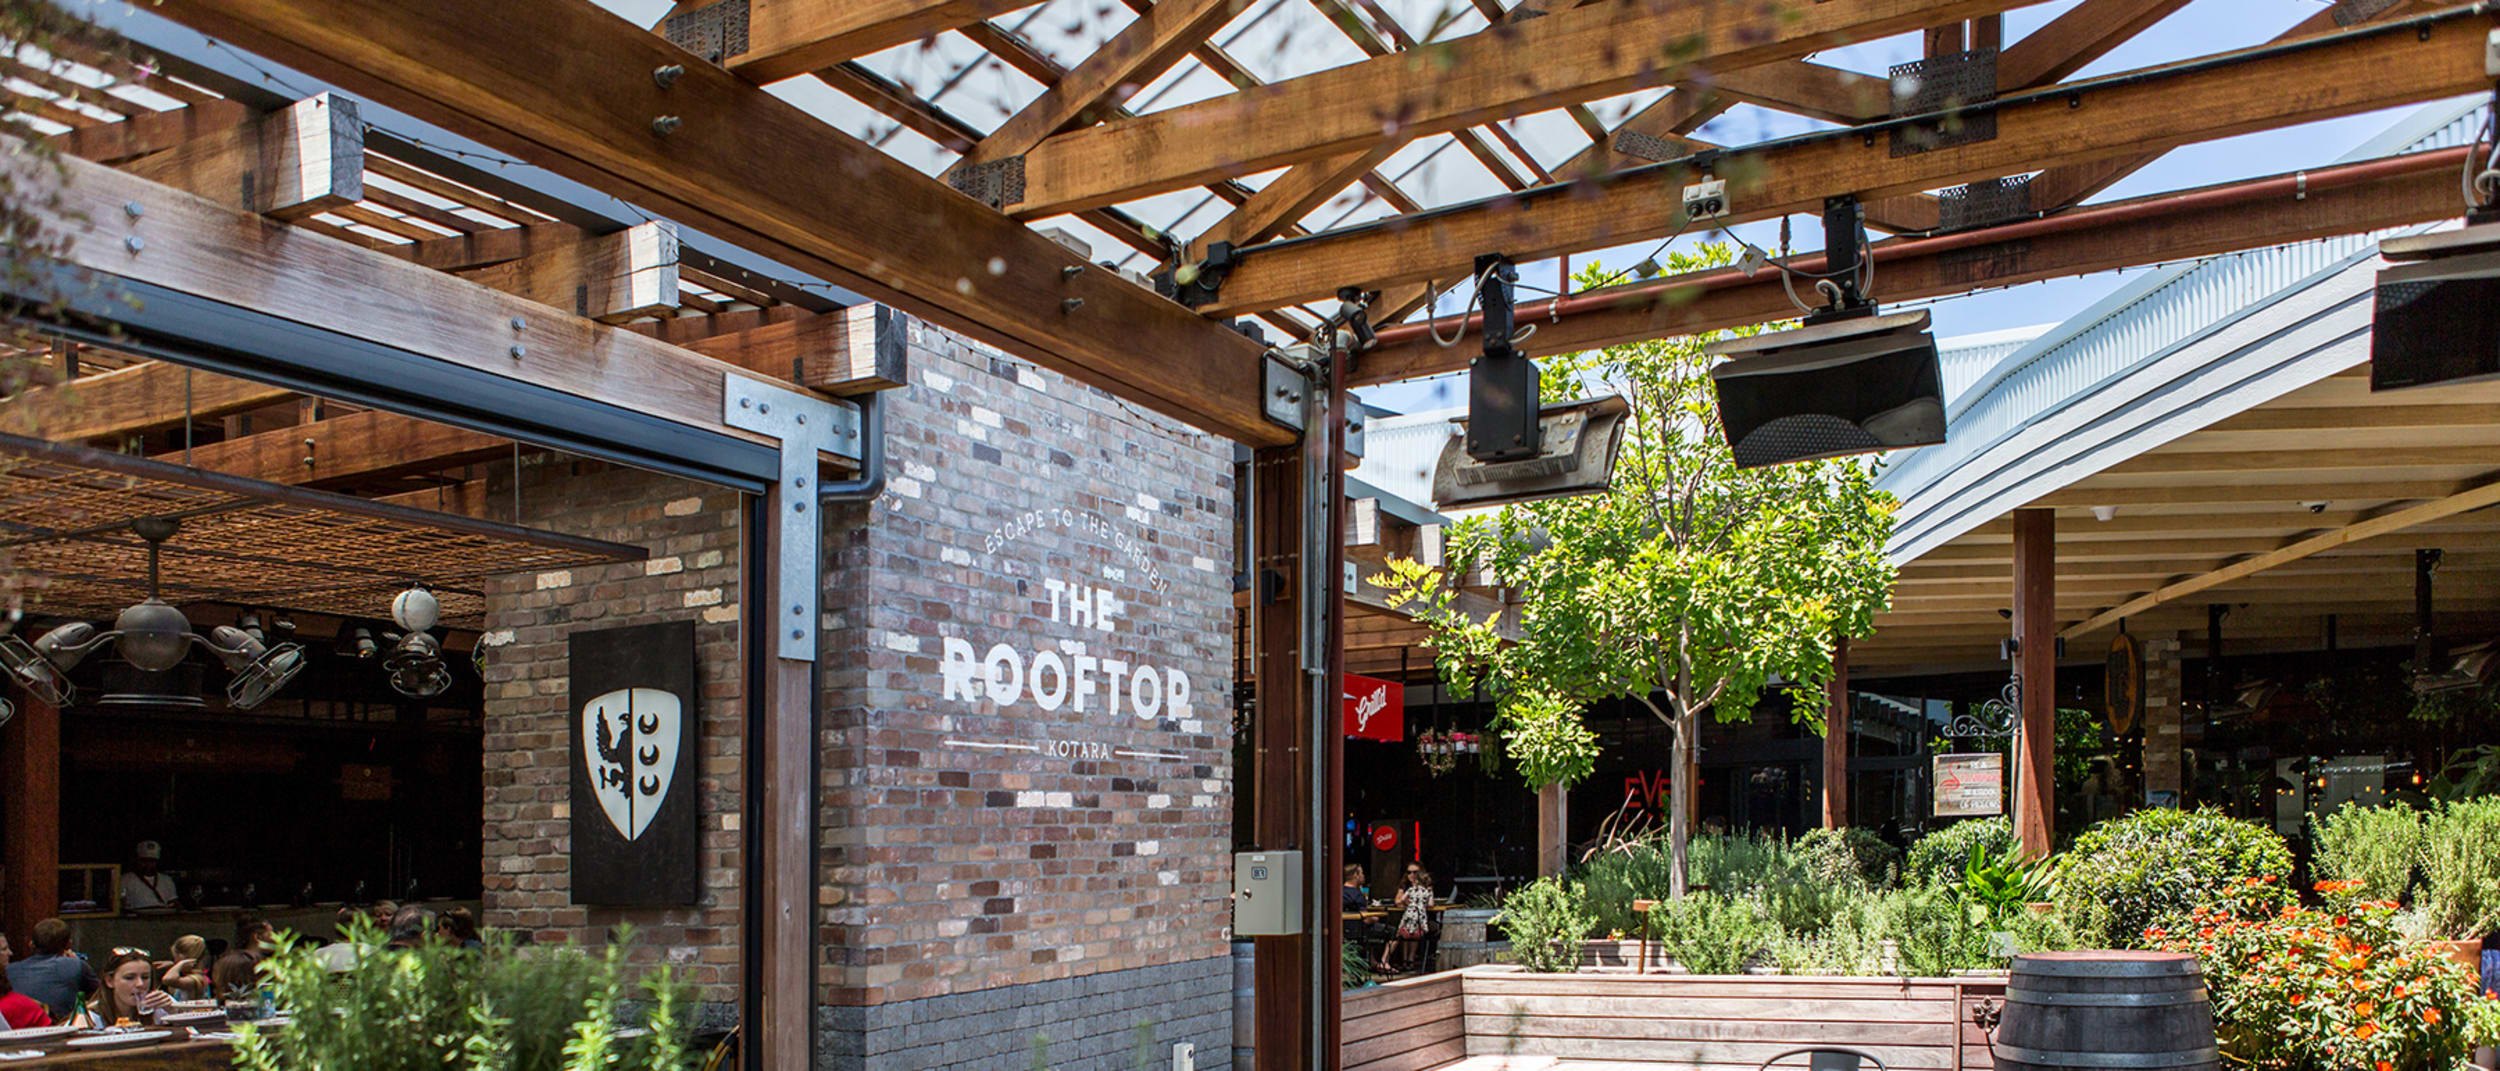 The Rooftop restaurants, cinemas and entertainment